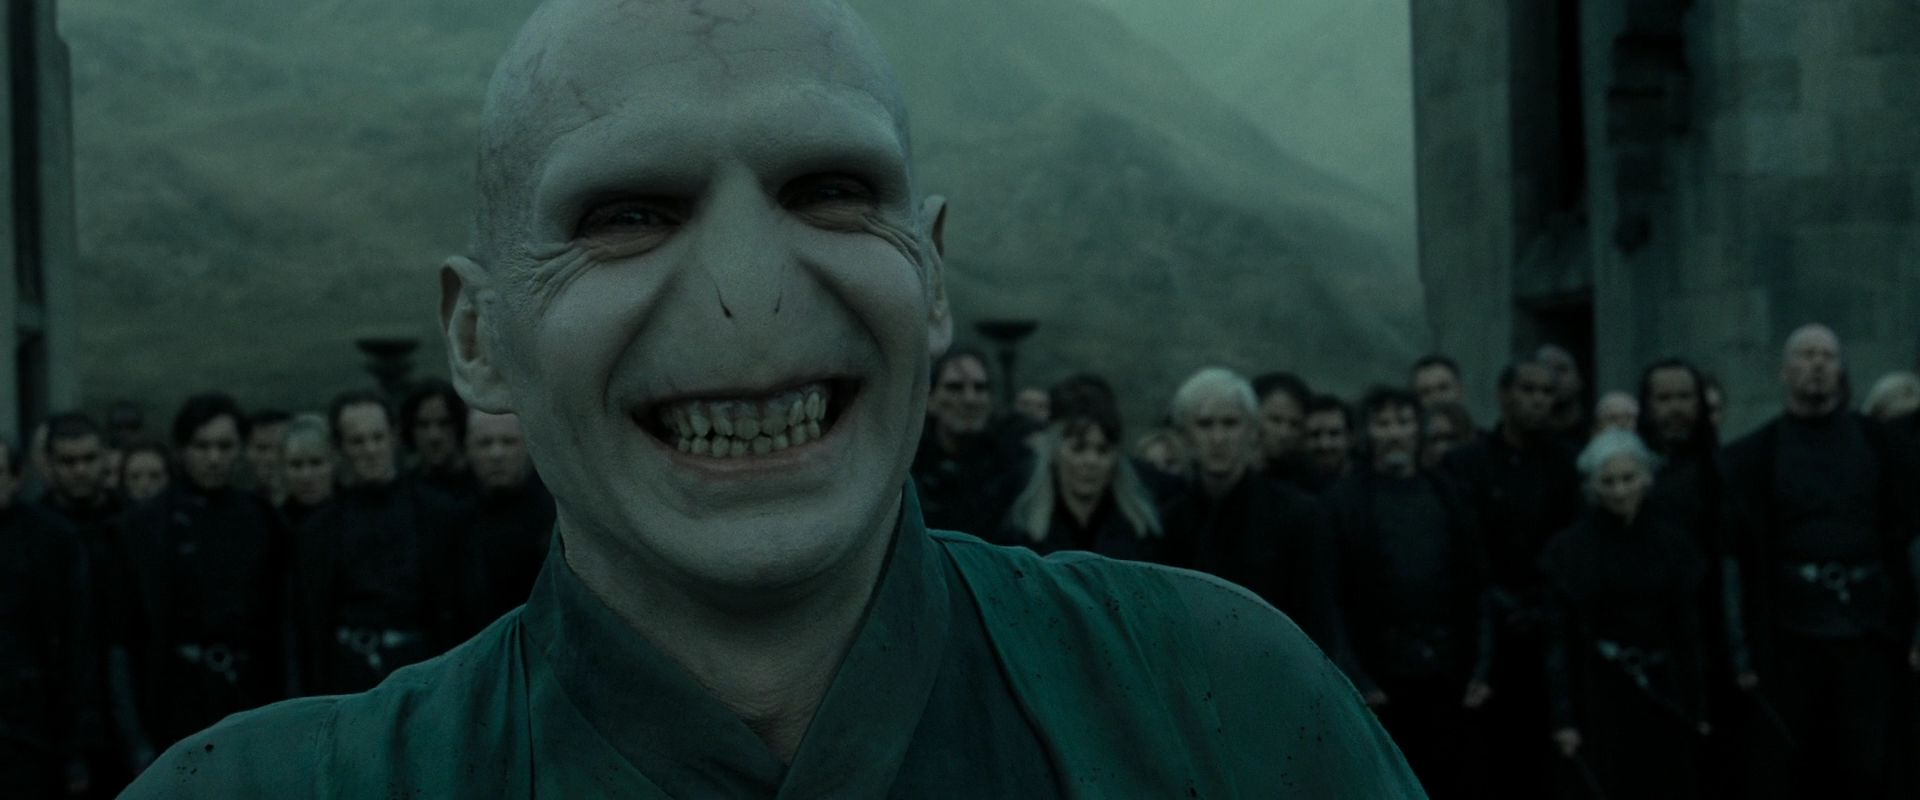 Topic à flood - Page 37 HP-DH-part-2-lord-voldemort-26625098-1920-800